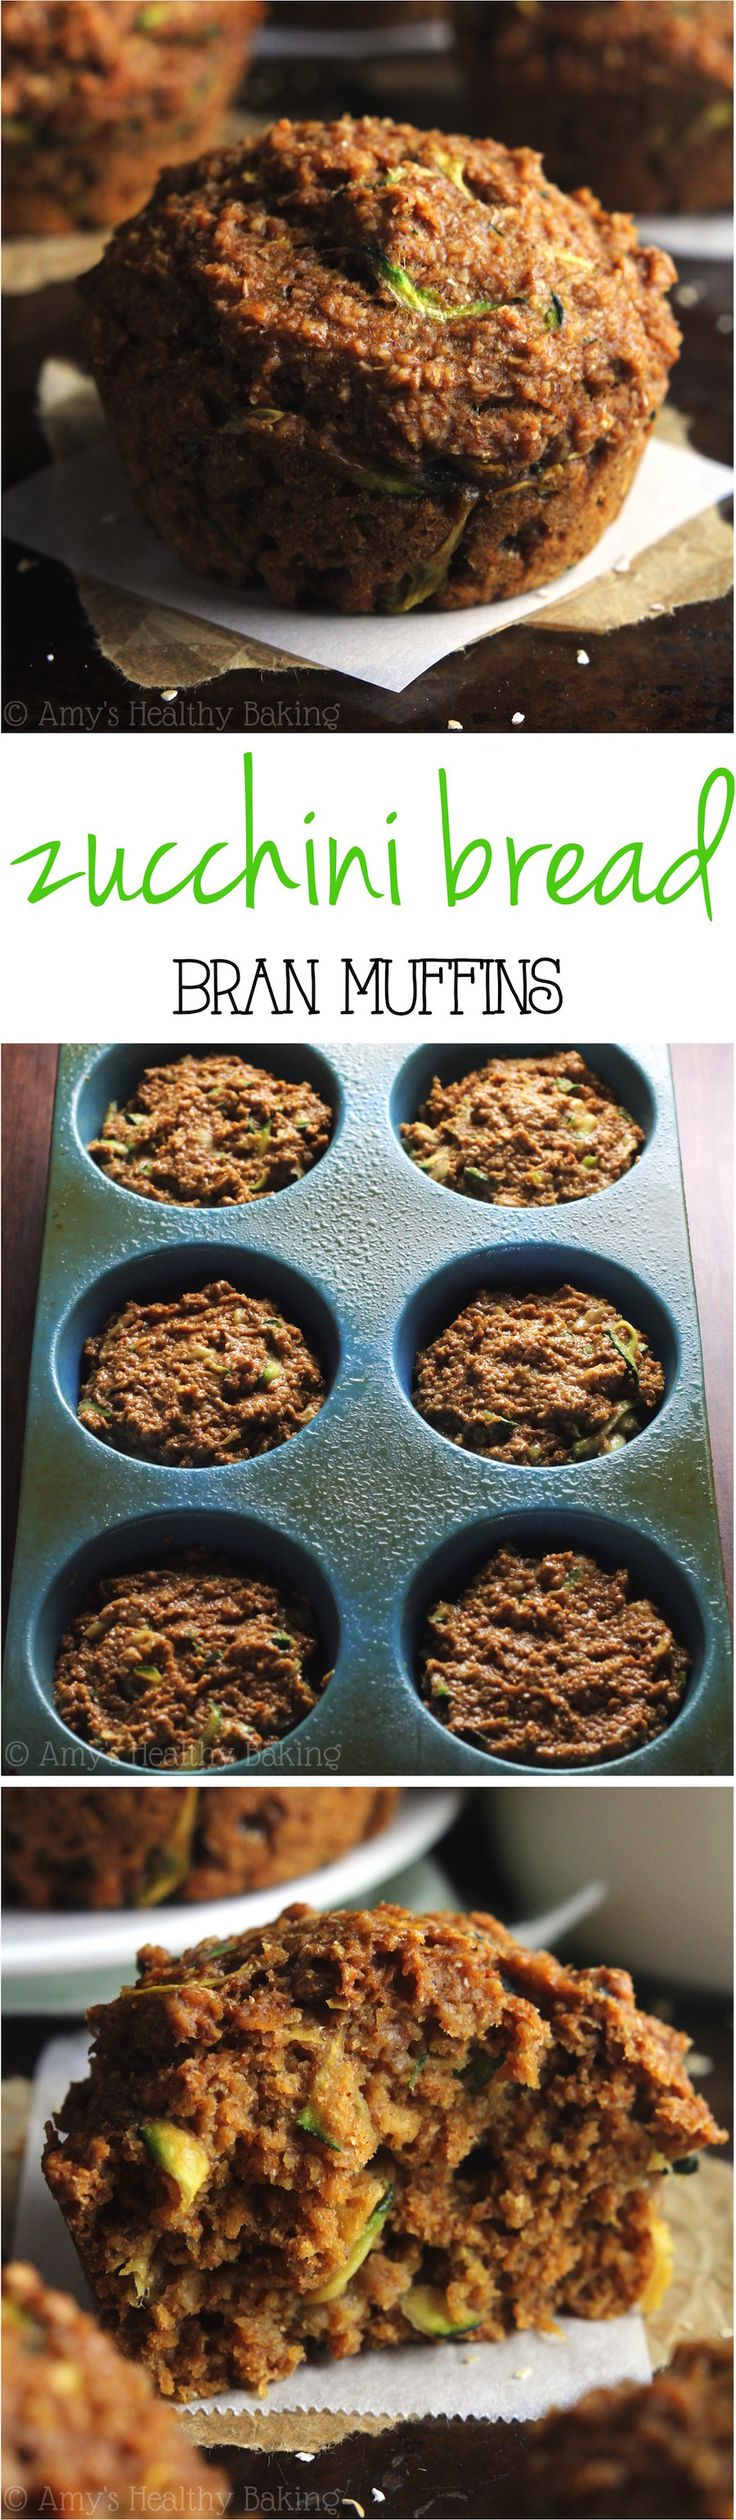 Healthy Zucchini Bread Bran Muffins -- one simple trick makes these the BEST bran muffins ever! Just 109 calories + nearly 4g of protein!